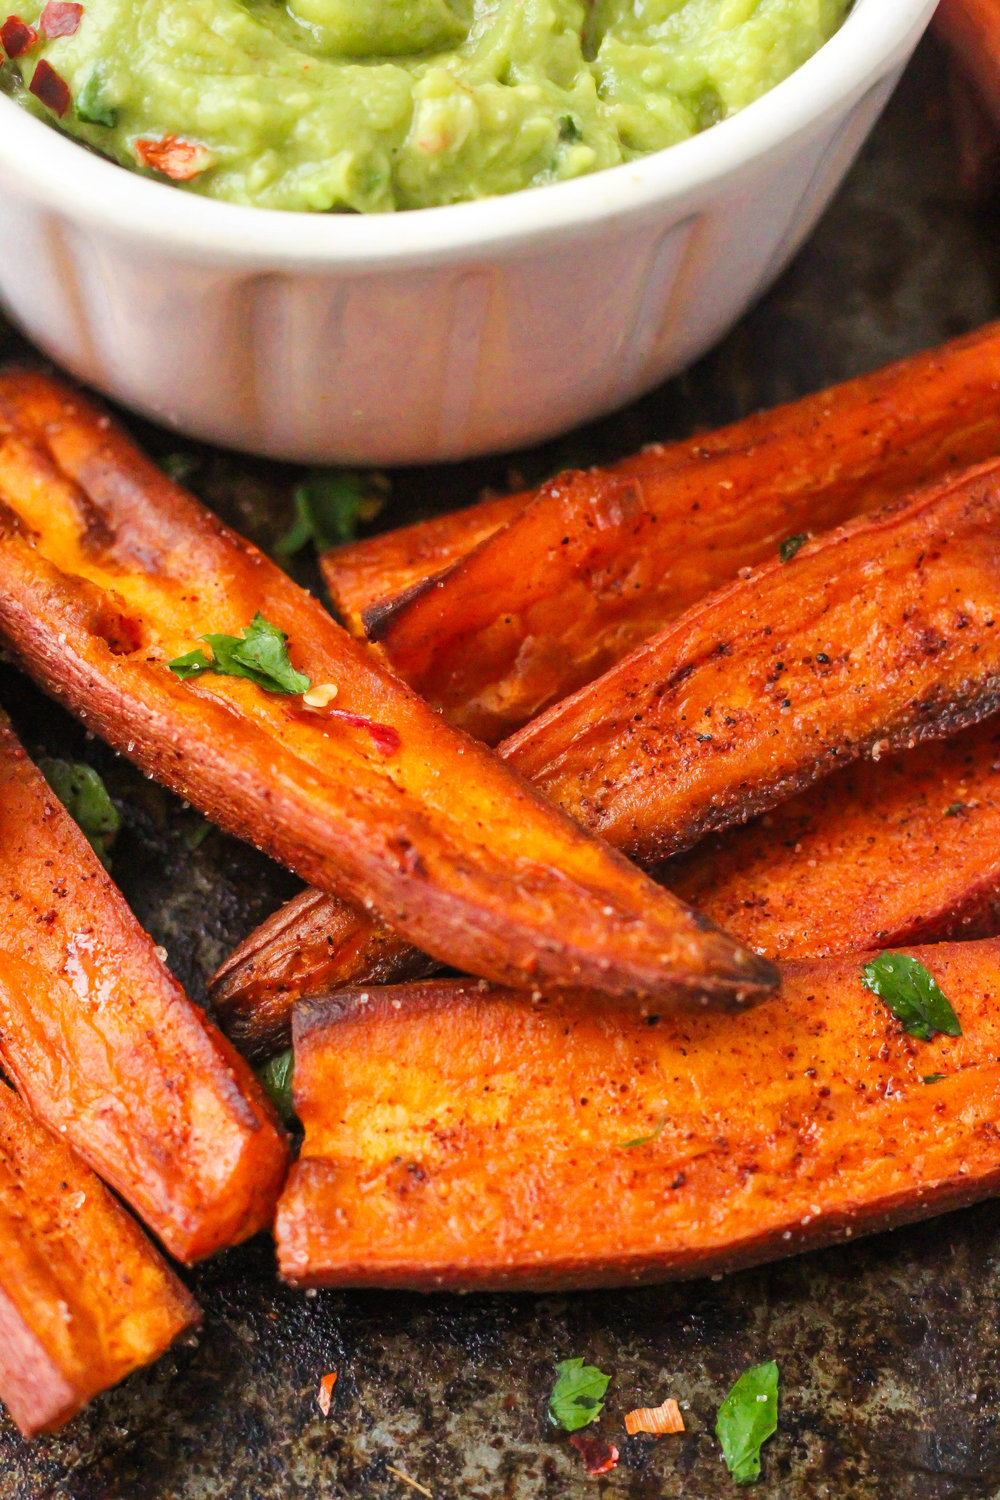 Smoky Roasted Sweet Potato Wedges and Guacamole